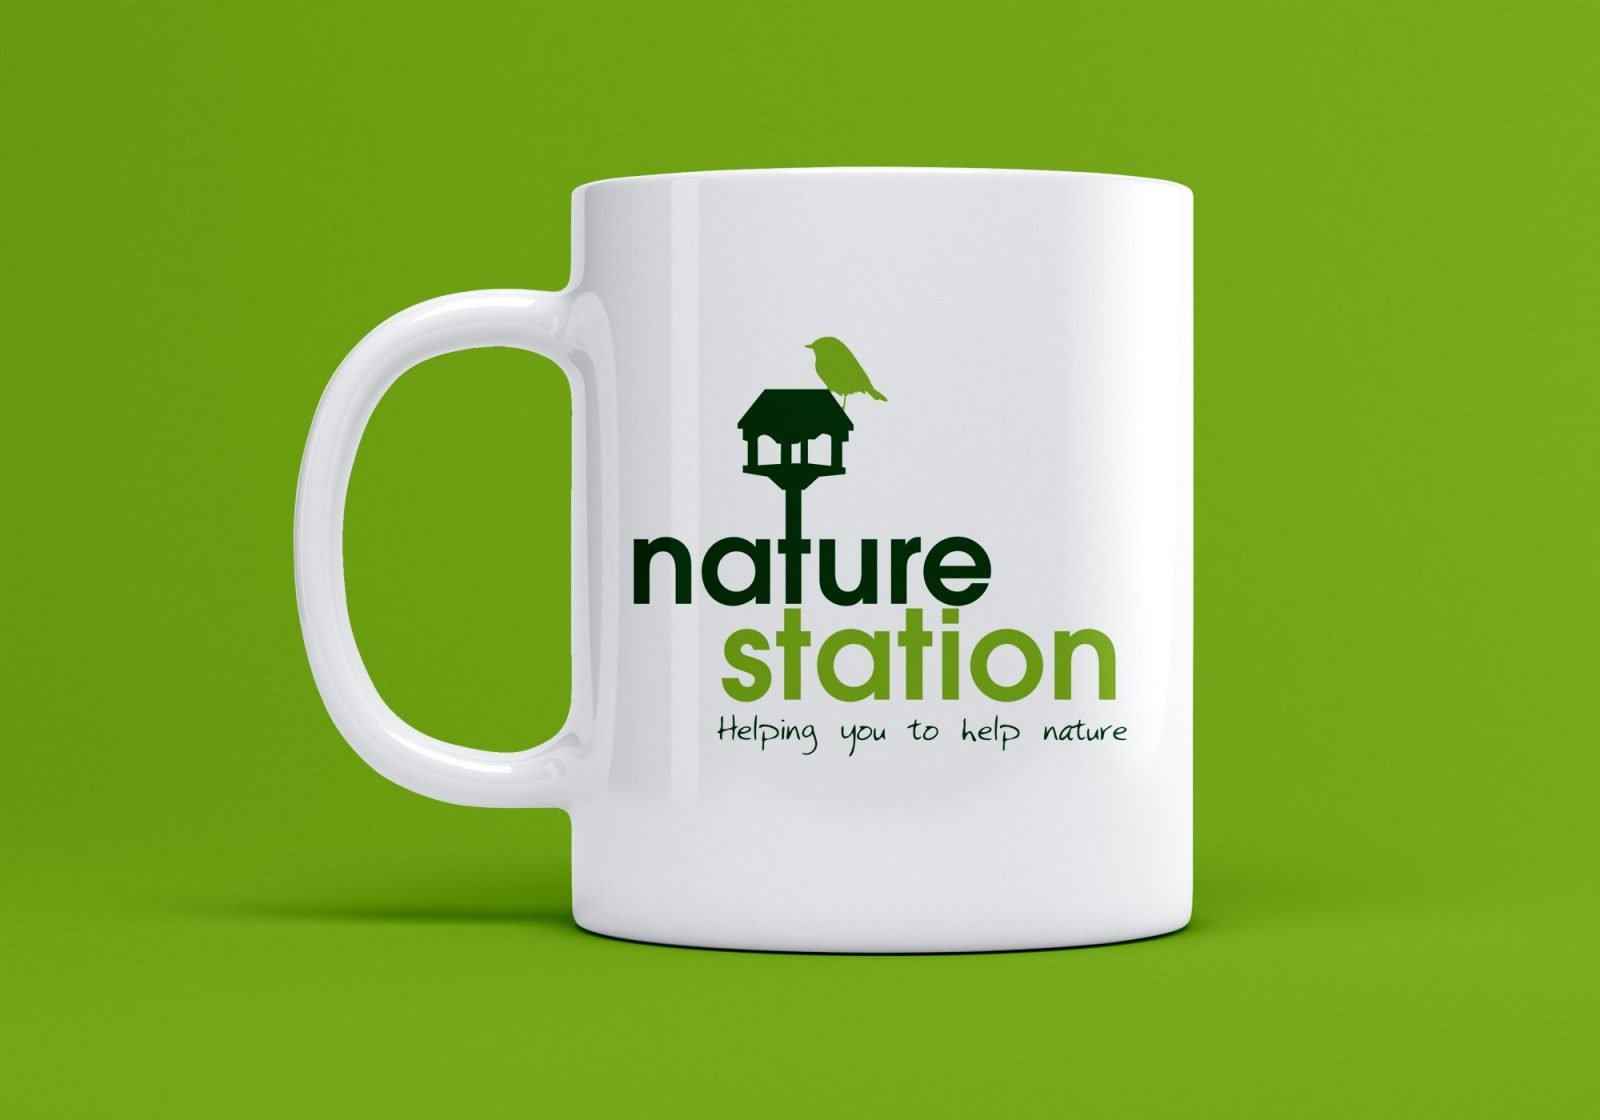 A branded mug showing the logo for Nature Station